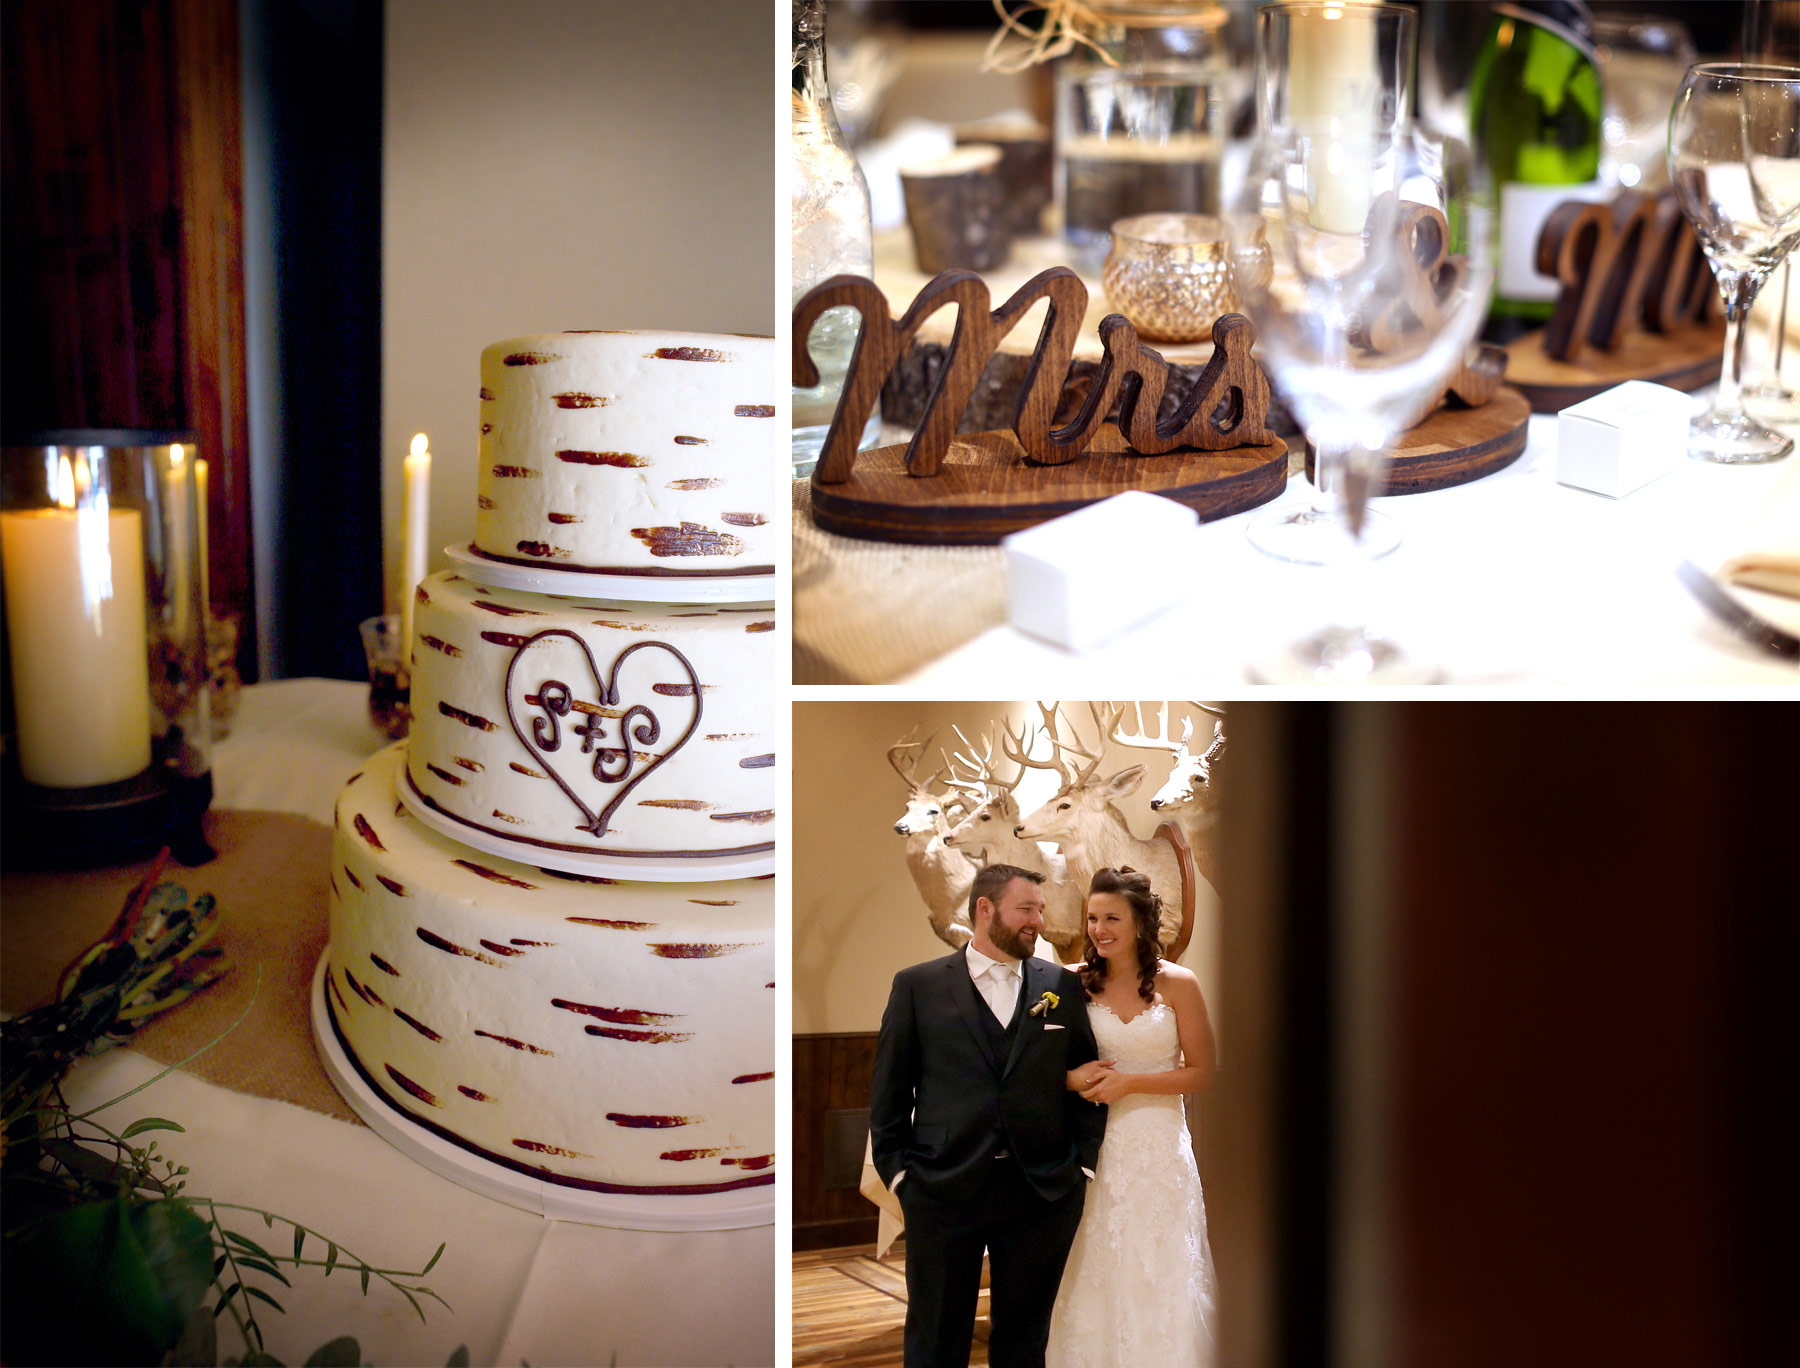 13-Minneapolis-Minnesota-Wedding-Photography-by-Vick-Photography-Prior-Lake-Horse-and-Hunt-Club-Rustic-Birch-Cake-Reception-Night-Sarah-and-Steve.jpg